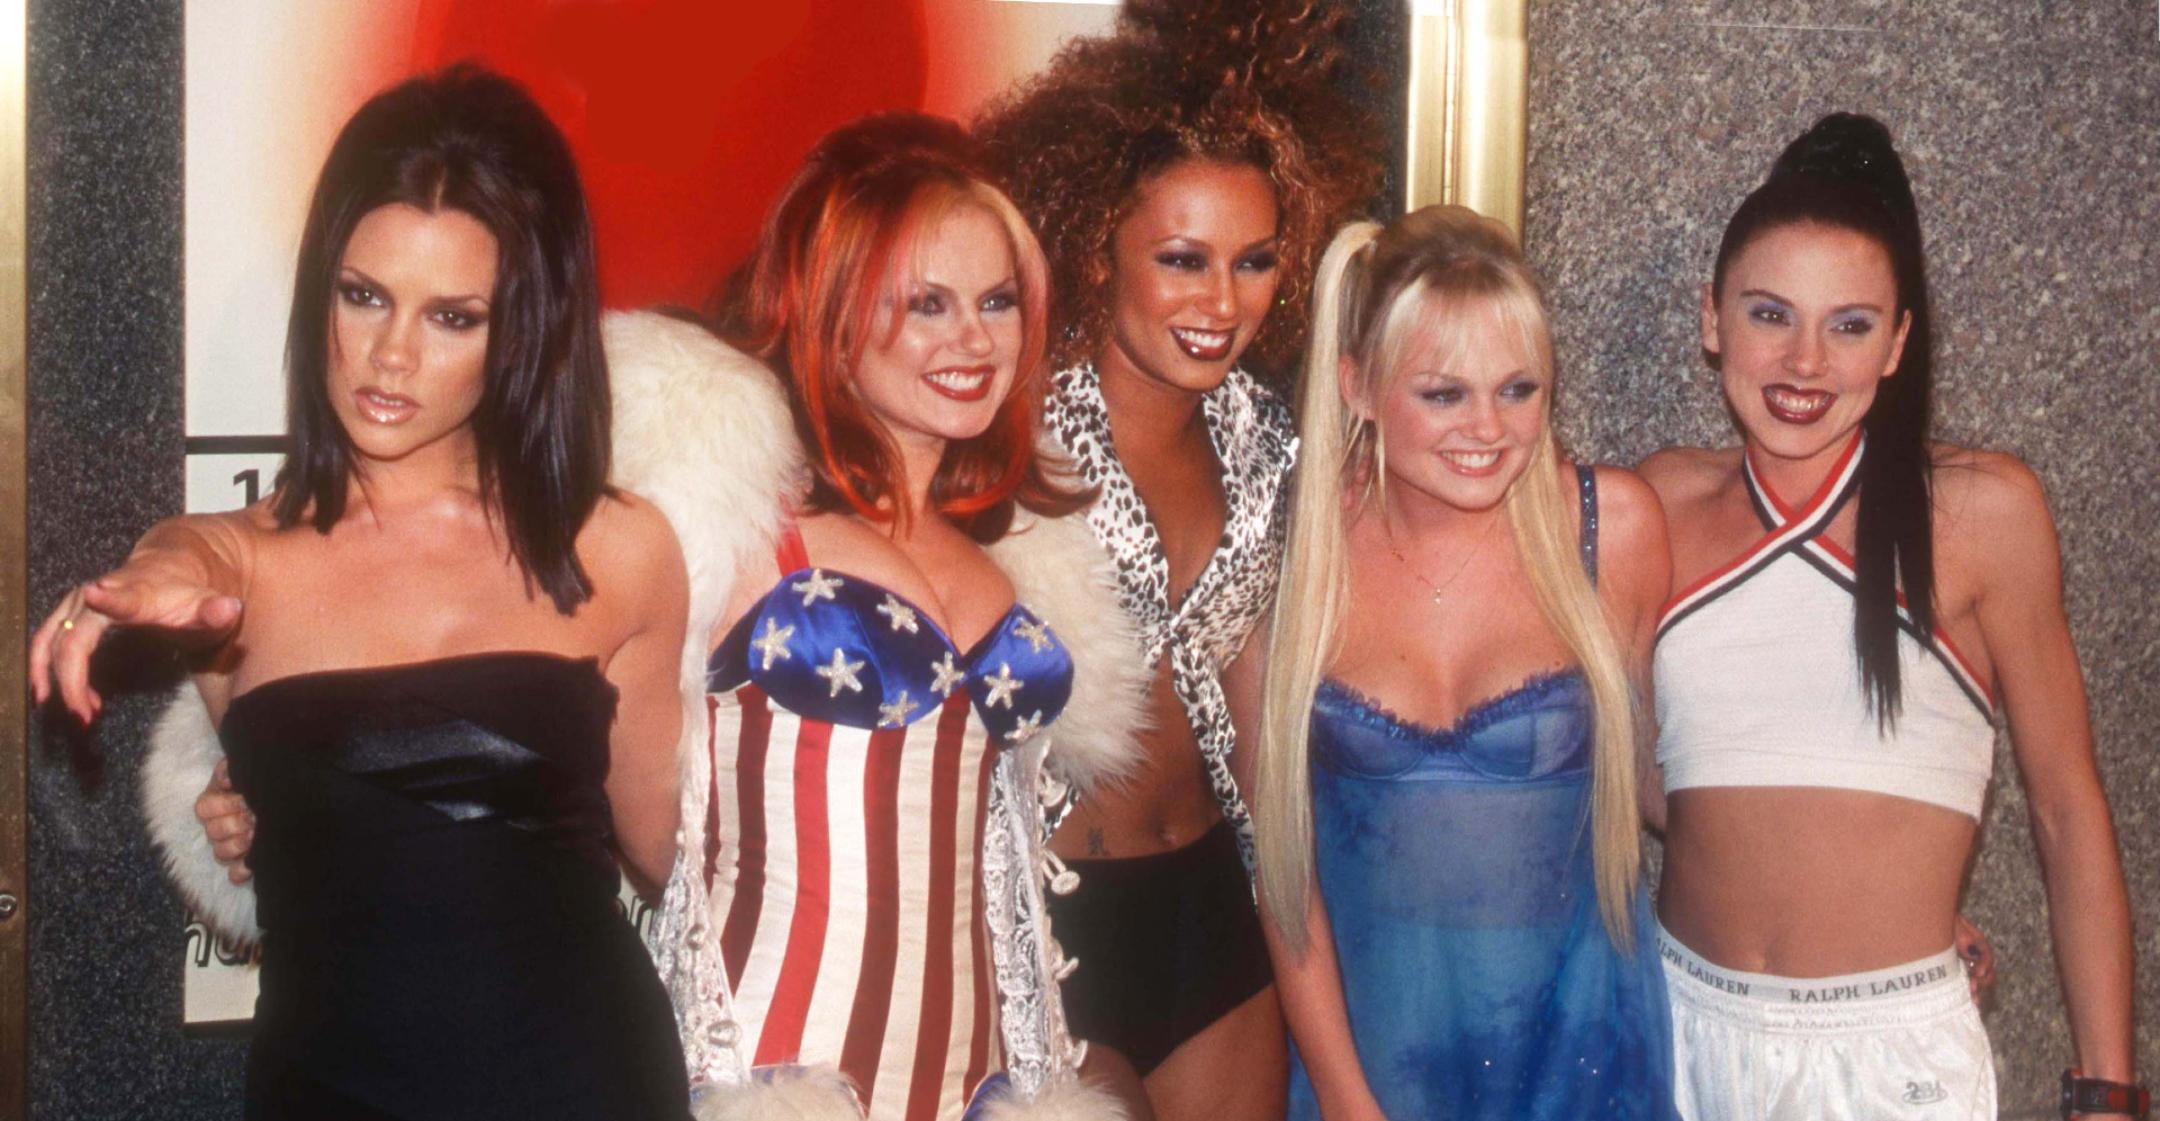 pelotons spice girls themed workout classes